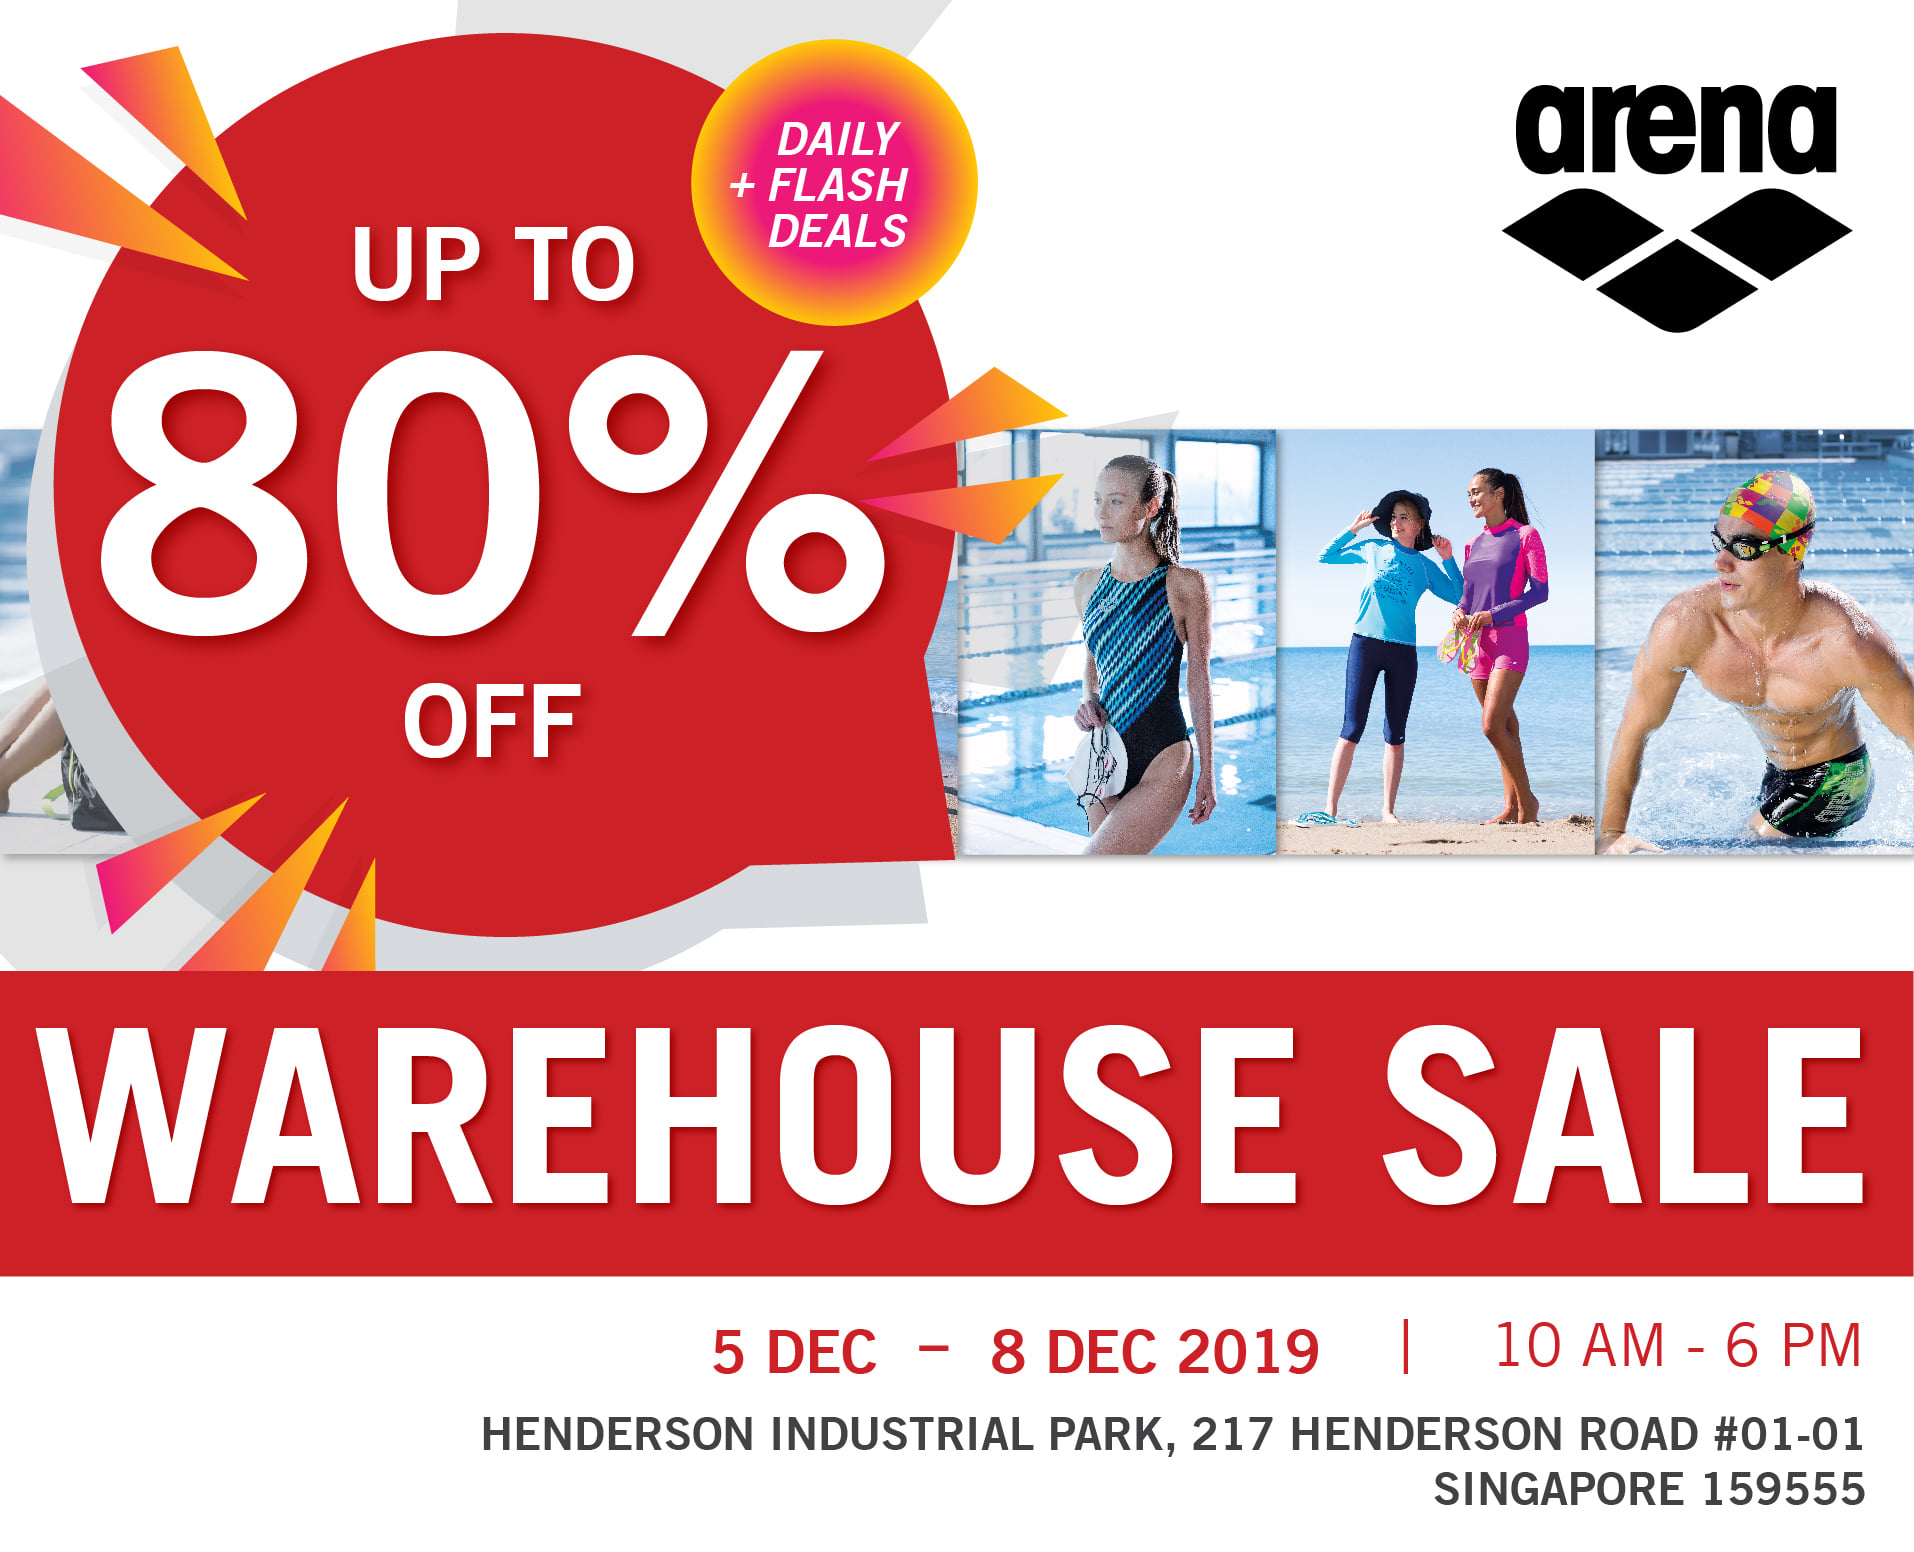 Arena Singapore Final Sale of the Year Up to 80% Off Promotion 5-8 Dec 2019 | Why Not Deals & Promotions